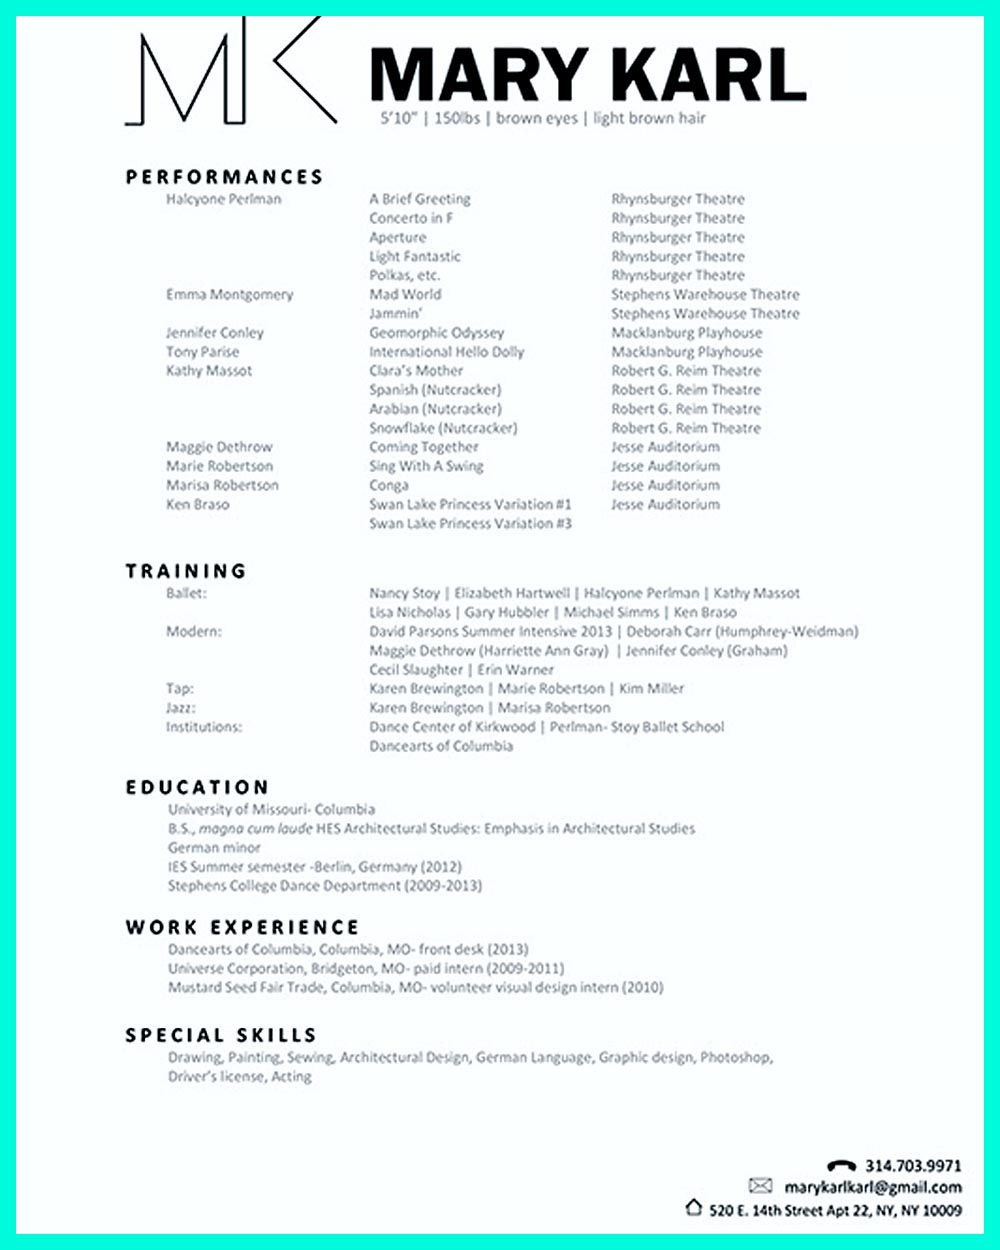 resume can be used for both novice and professional